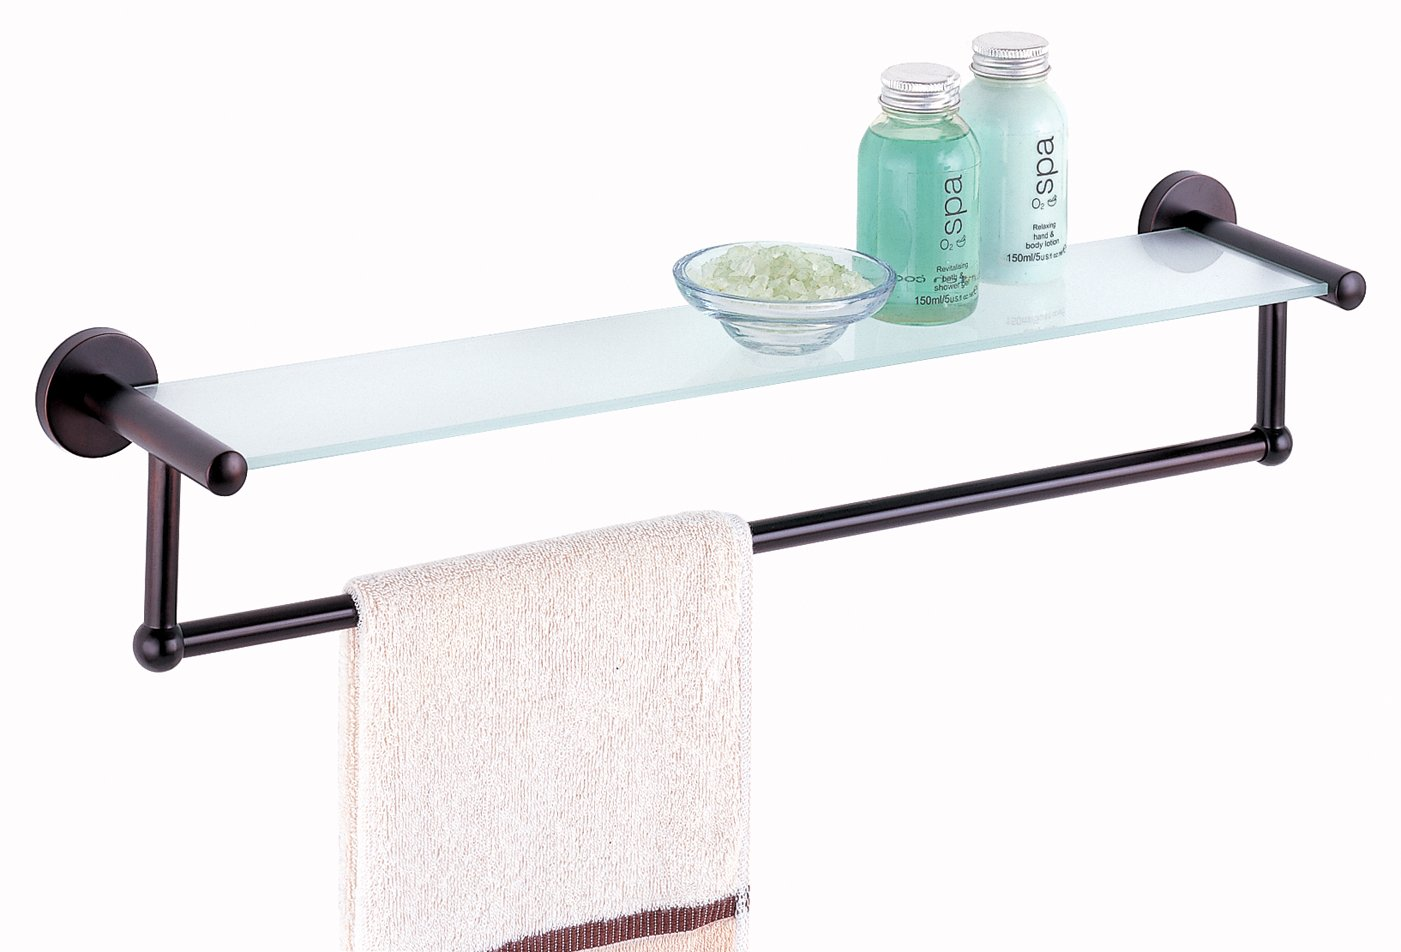 Amazon.com: Organize It All Oil Rubbed Glass Shelf with Towel Bar ...